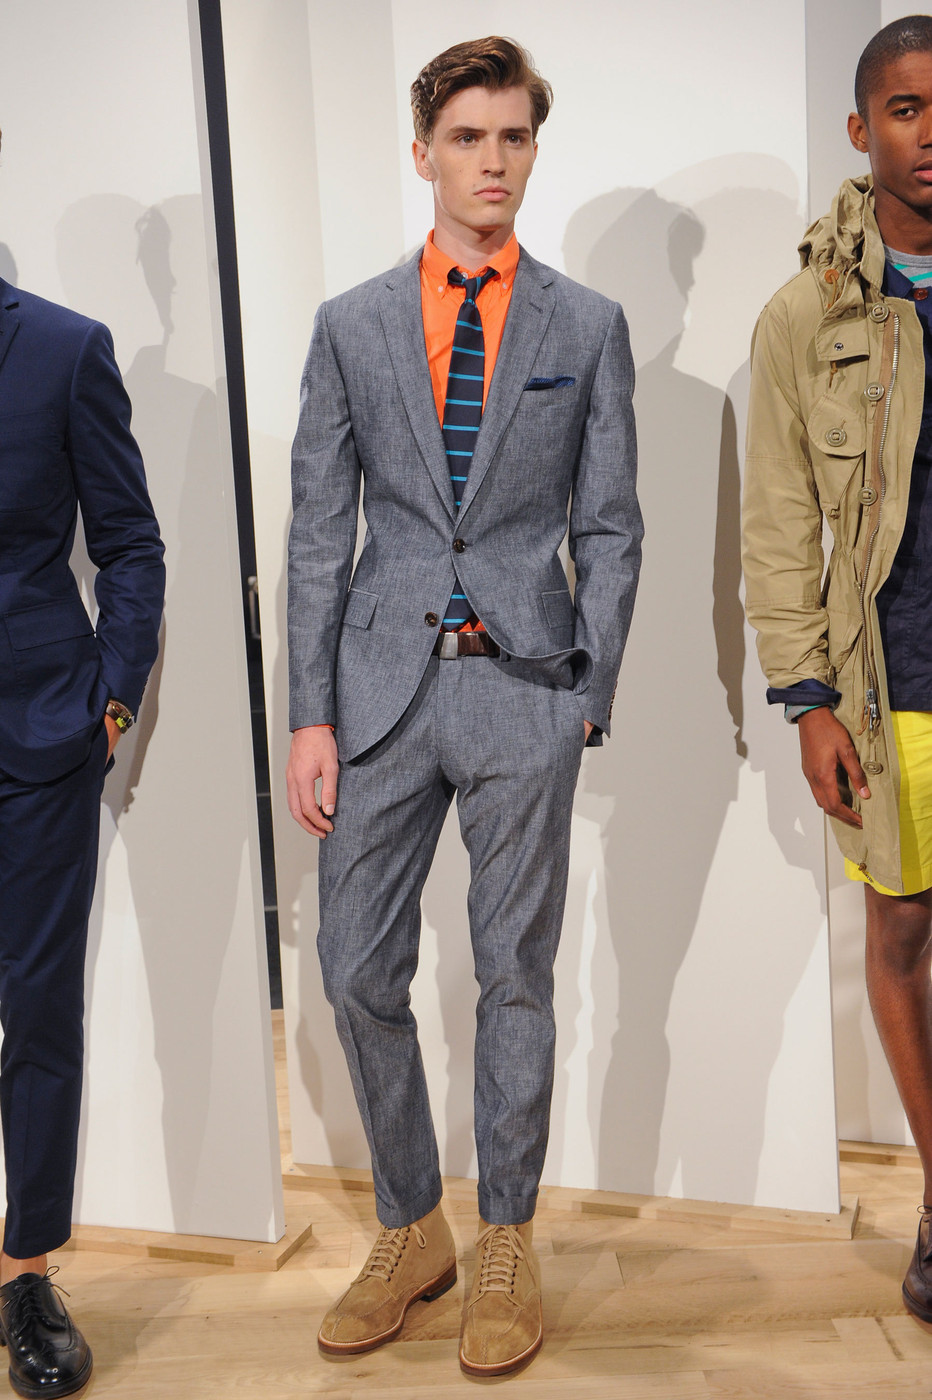 J crew mens at new york fashion week spring 2013 stylebistro for J crew mens outfits